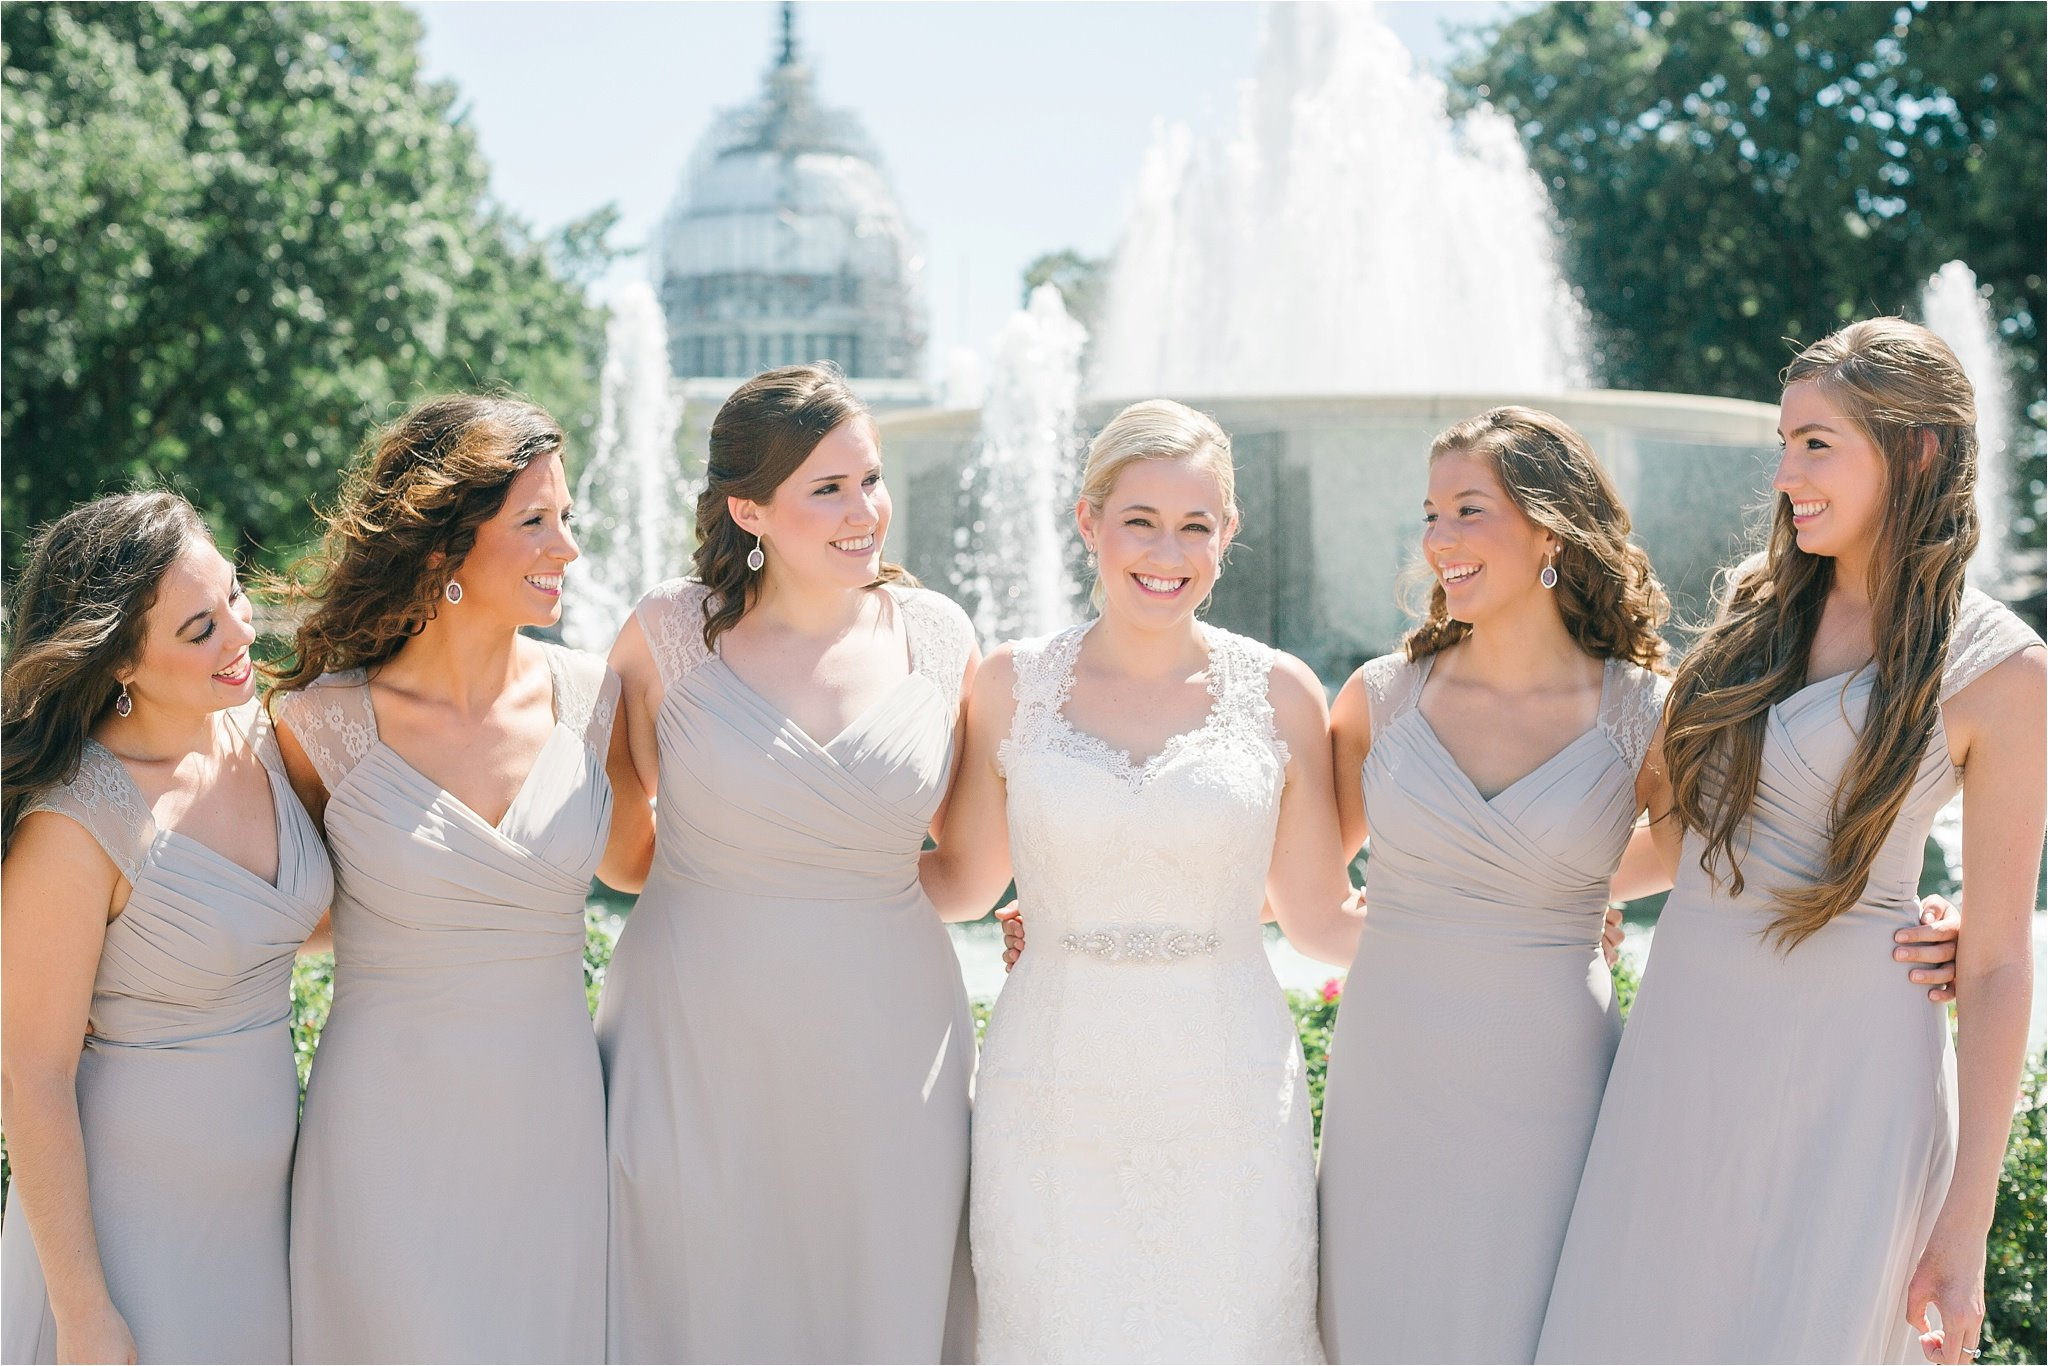 Azazie Jaidyn Bridesmaid Dress | Azazie